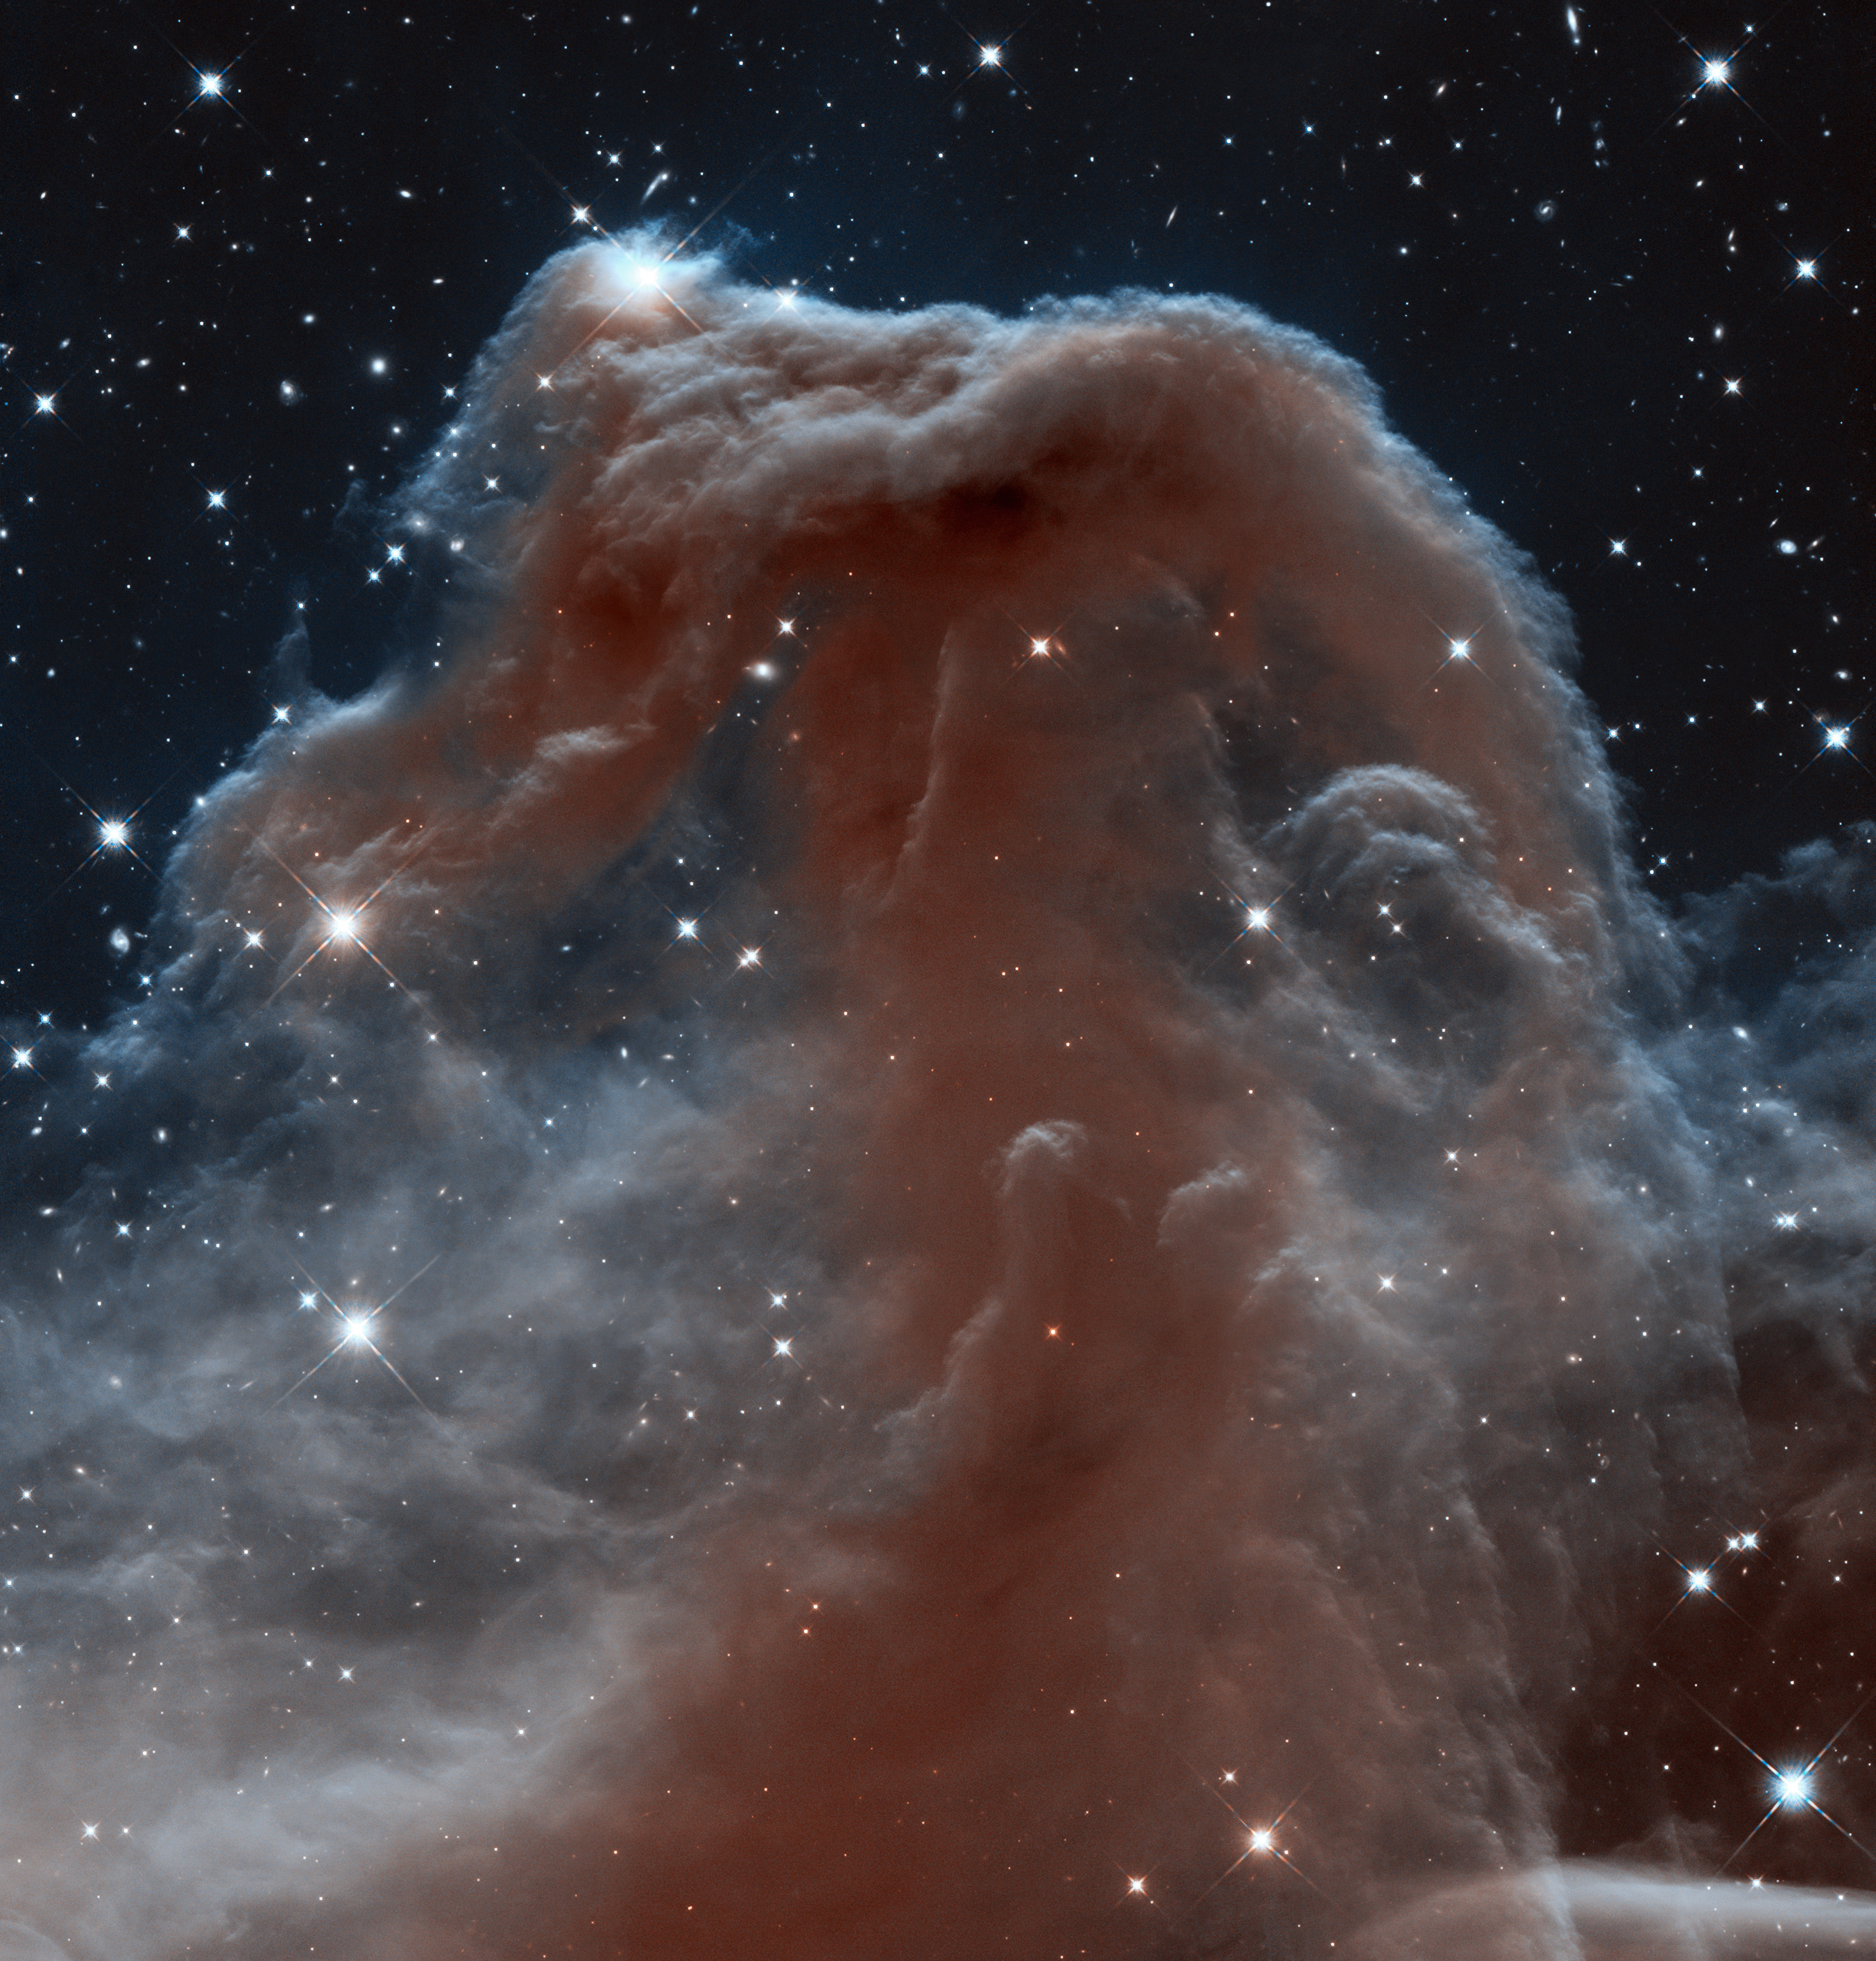 What Gives Galaxies Their Distinctive Shape Hubble Sees A Horsehead Of A Different Color